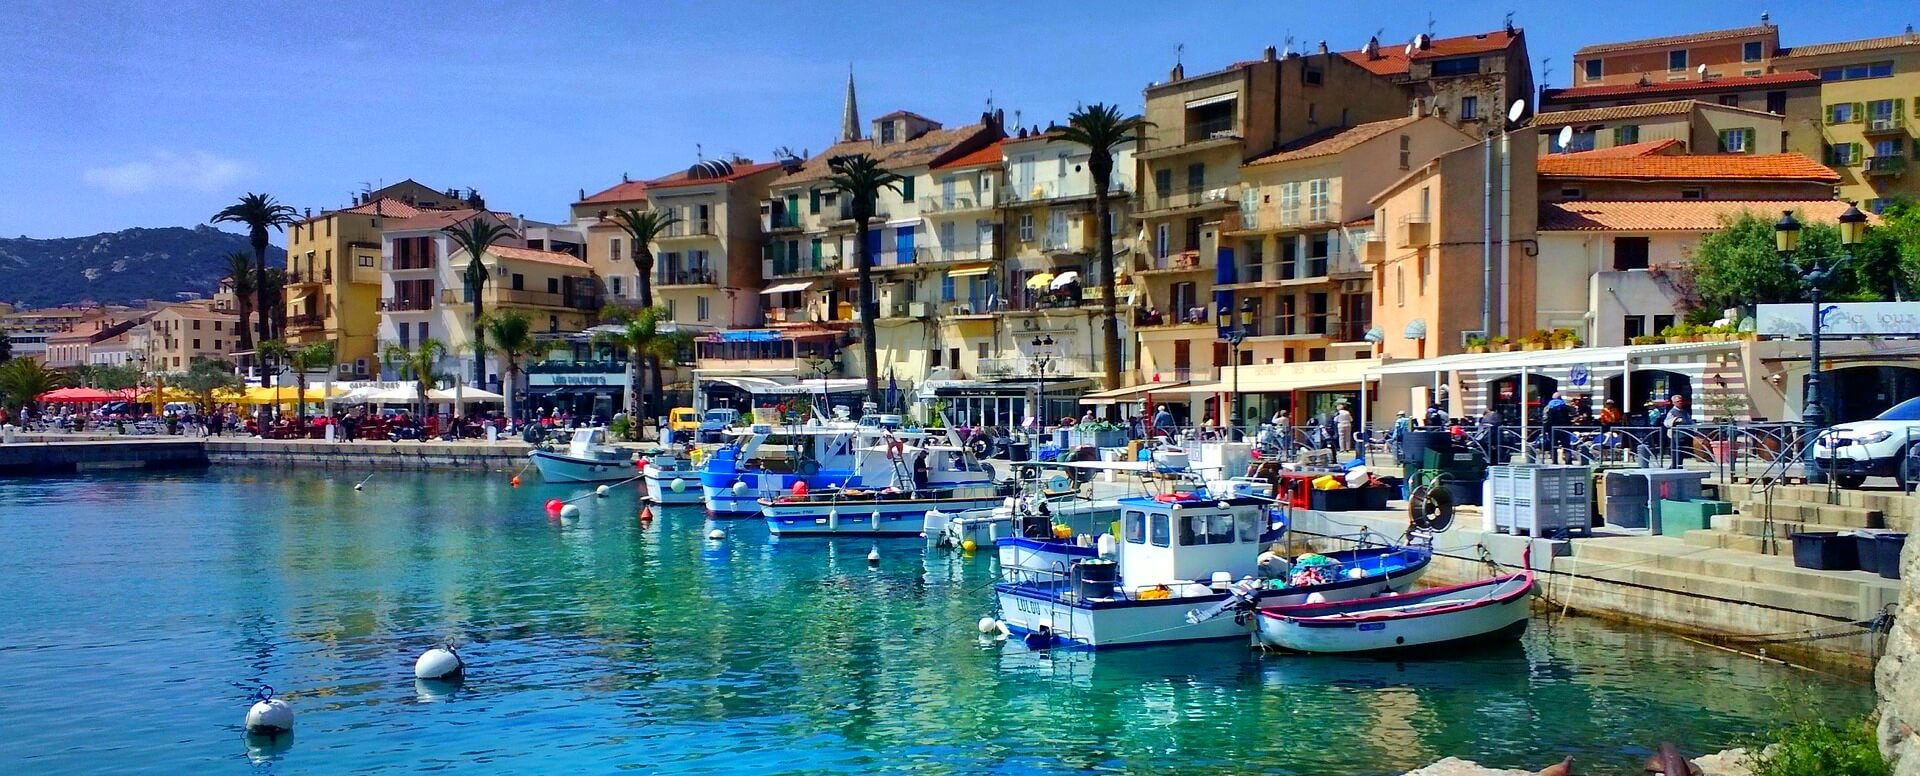 Authentic places to discover - Corsica